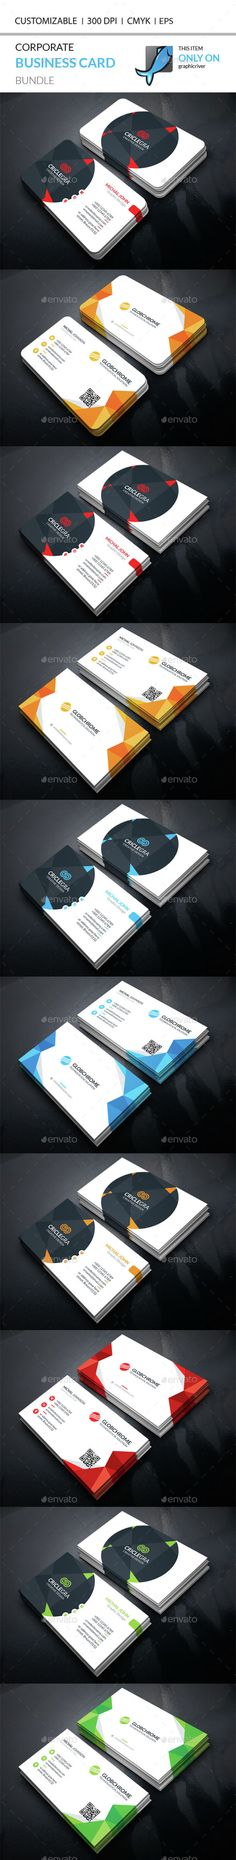 Corporate Business Card Bundle — Vector EPS #artistic #symple • Available here → https://graphicriver.net/item/corporate-business-card-bundle/14914476?ref=pxcr